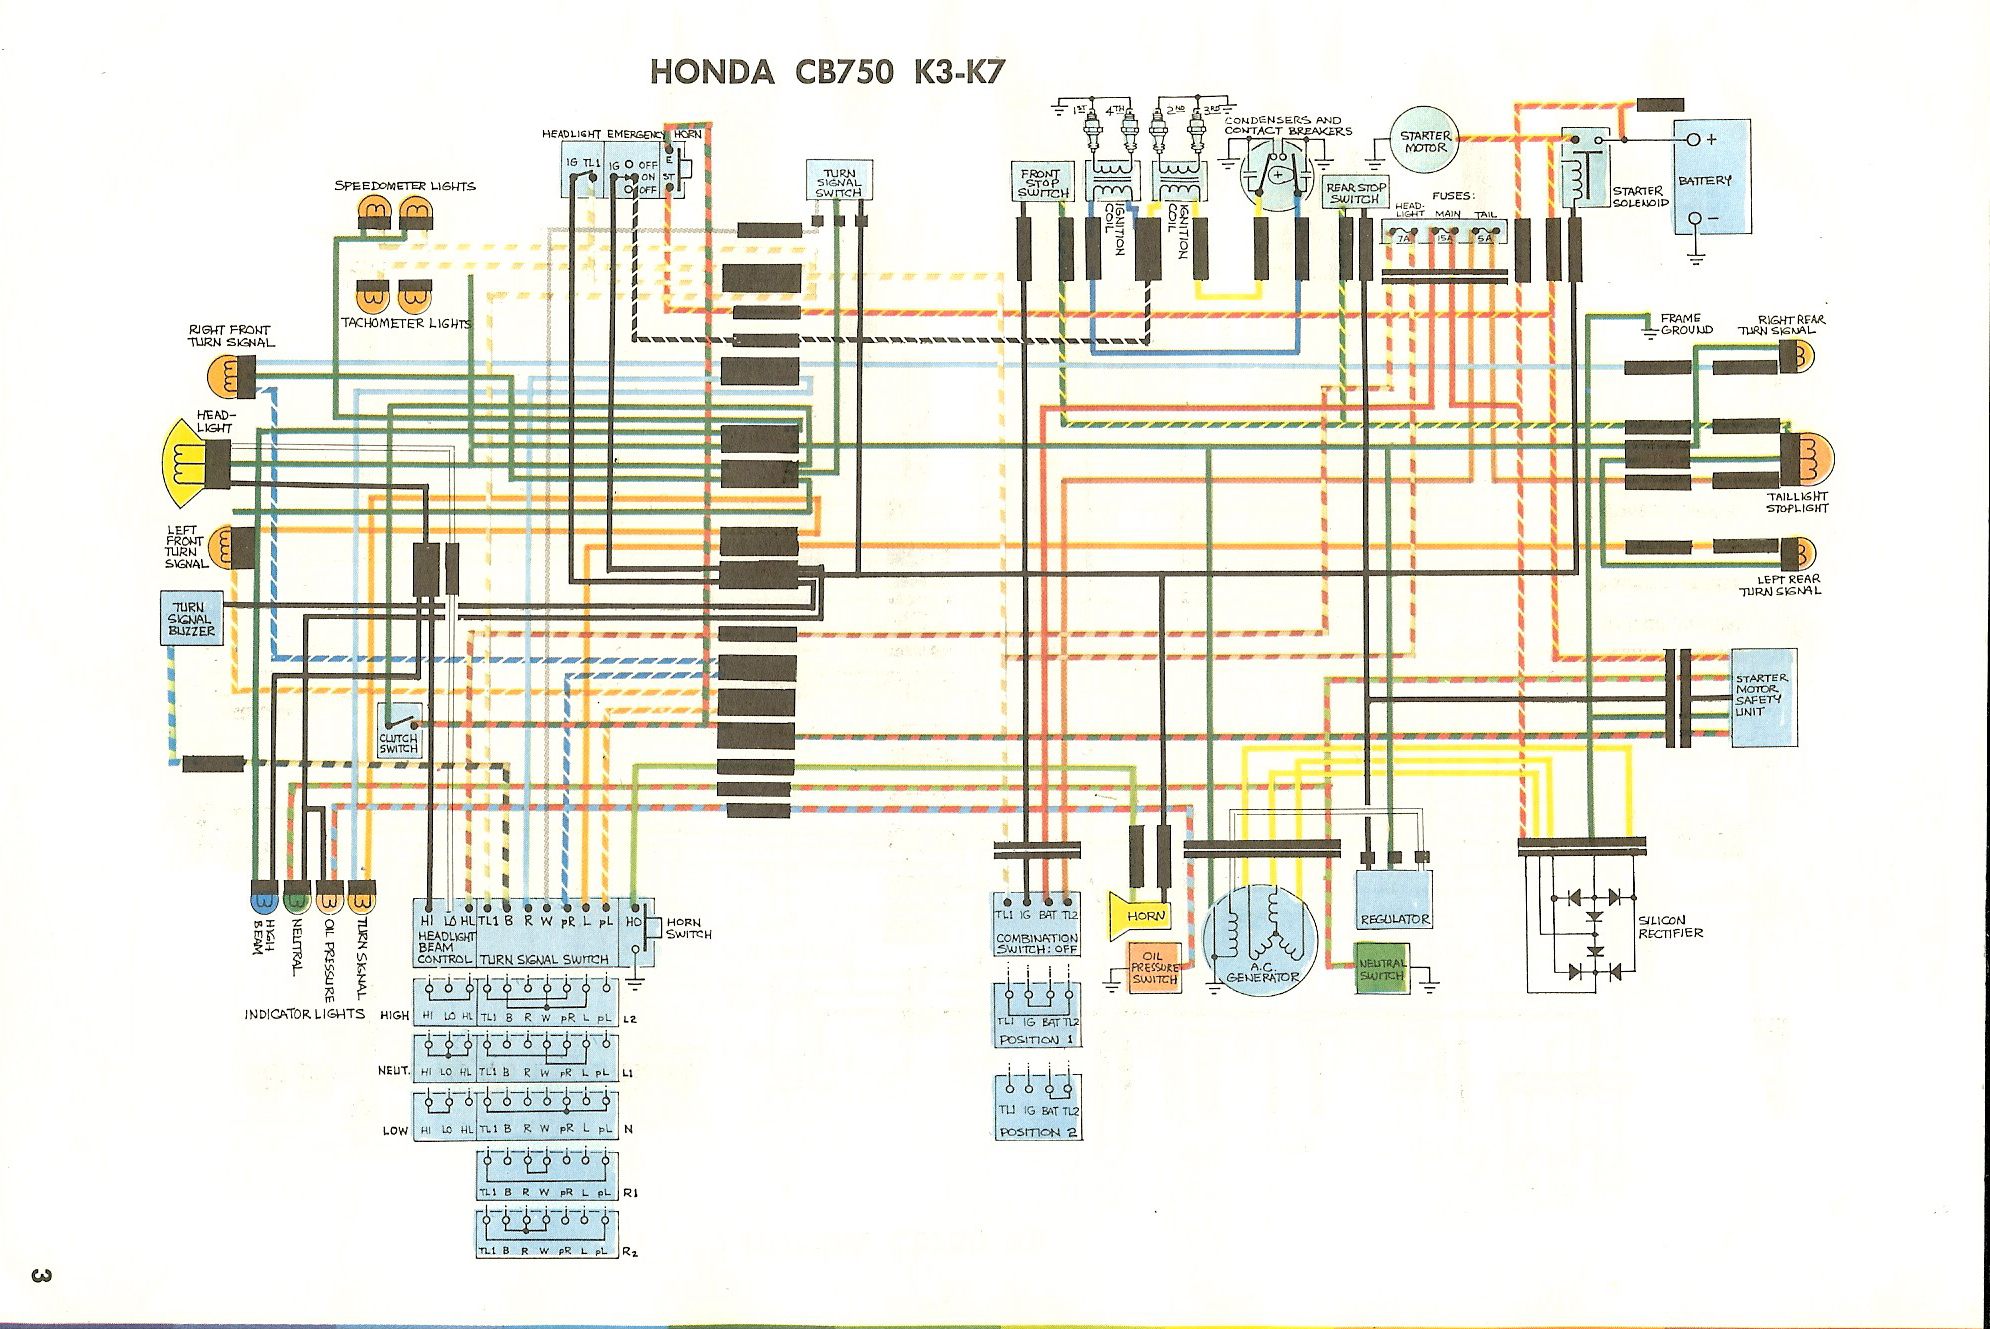 WD750K3_K7 1971 honda cb350 wiring diagram cb650 wiring diagram \u2022 wiring 1976 cb550f wiring diagram at webbmarketing.co